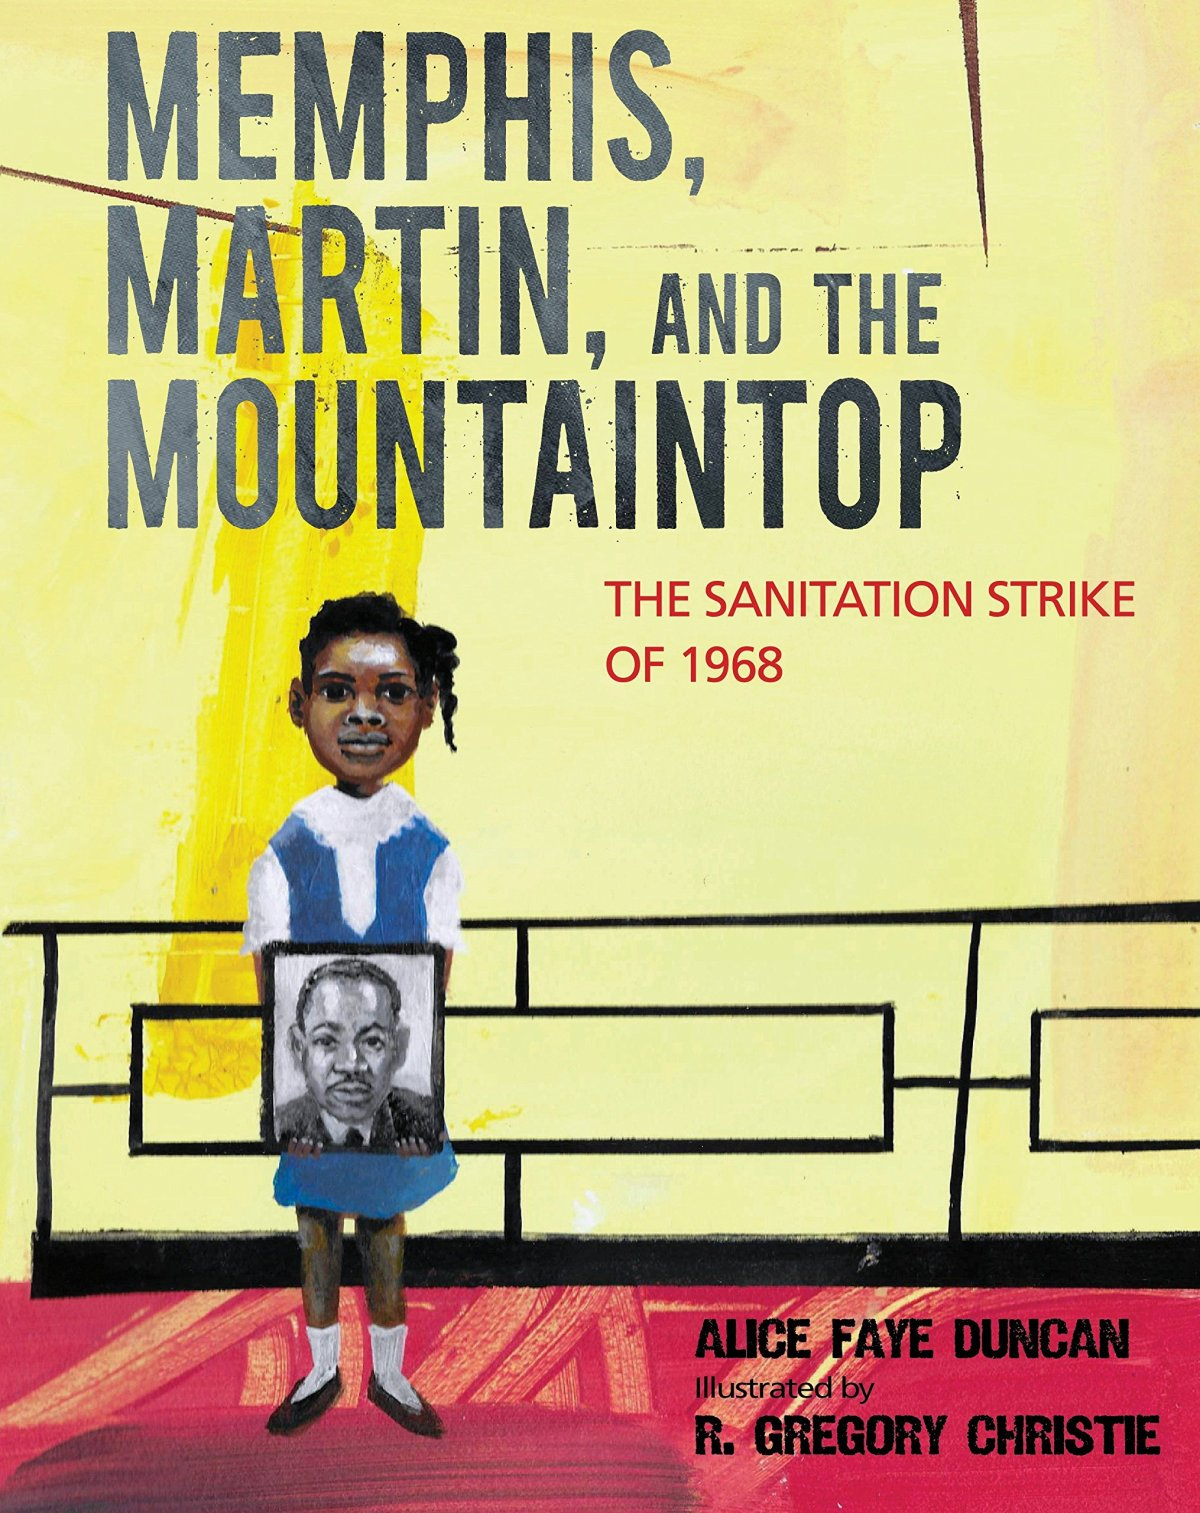 memphis, martin, and the mountaintop cover image